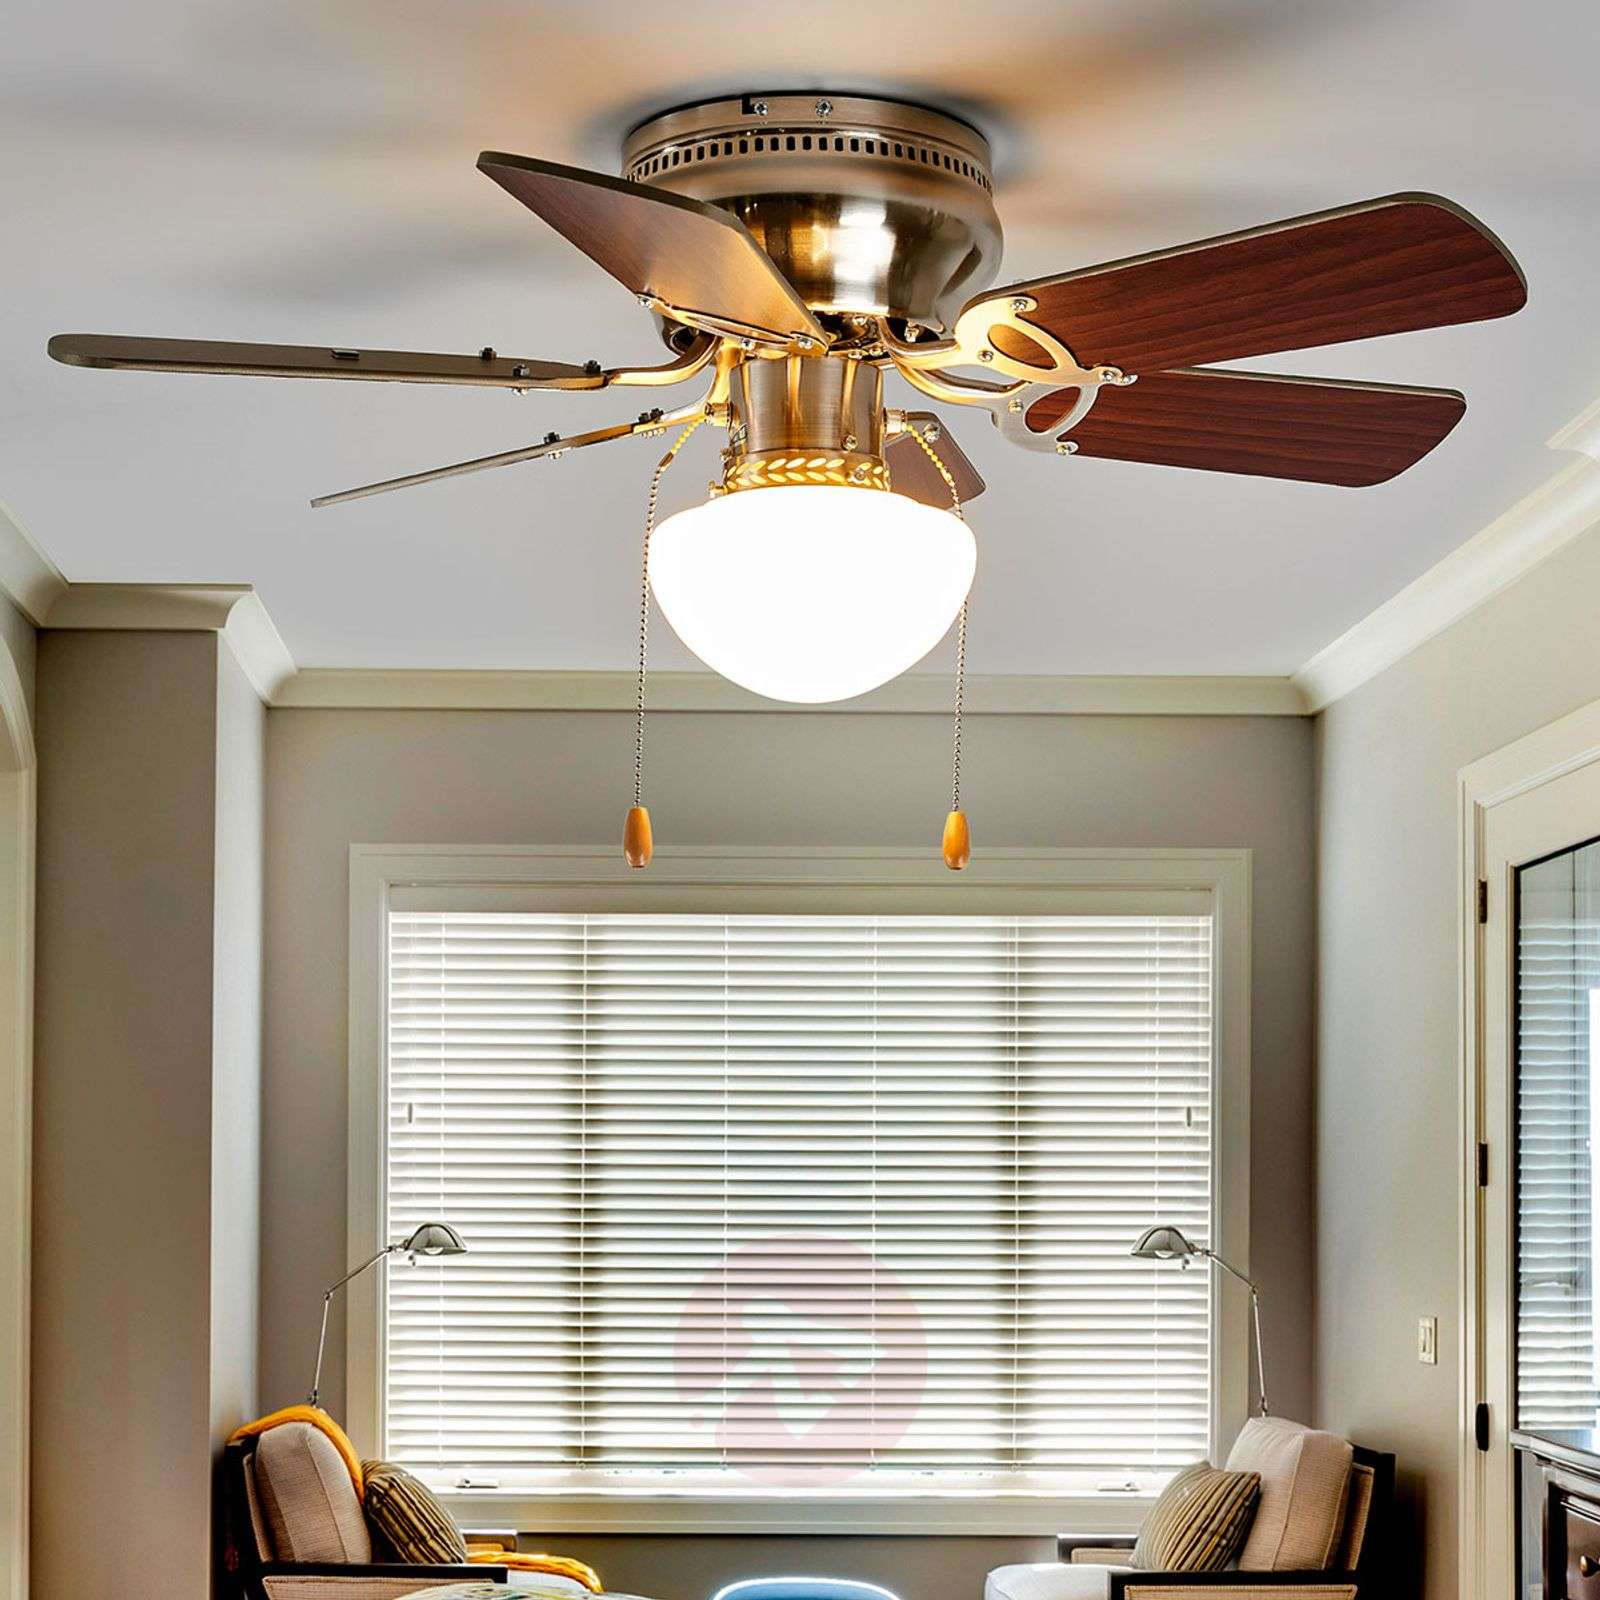 Flavio ceiling fan with light and six blades-4018096-010